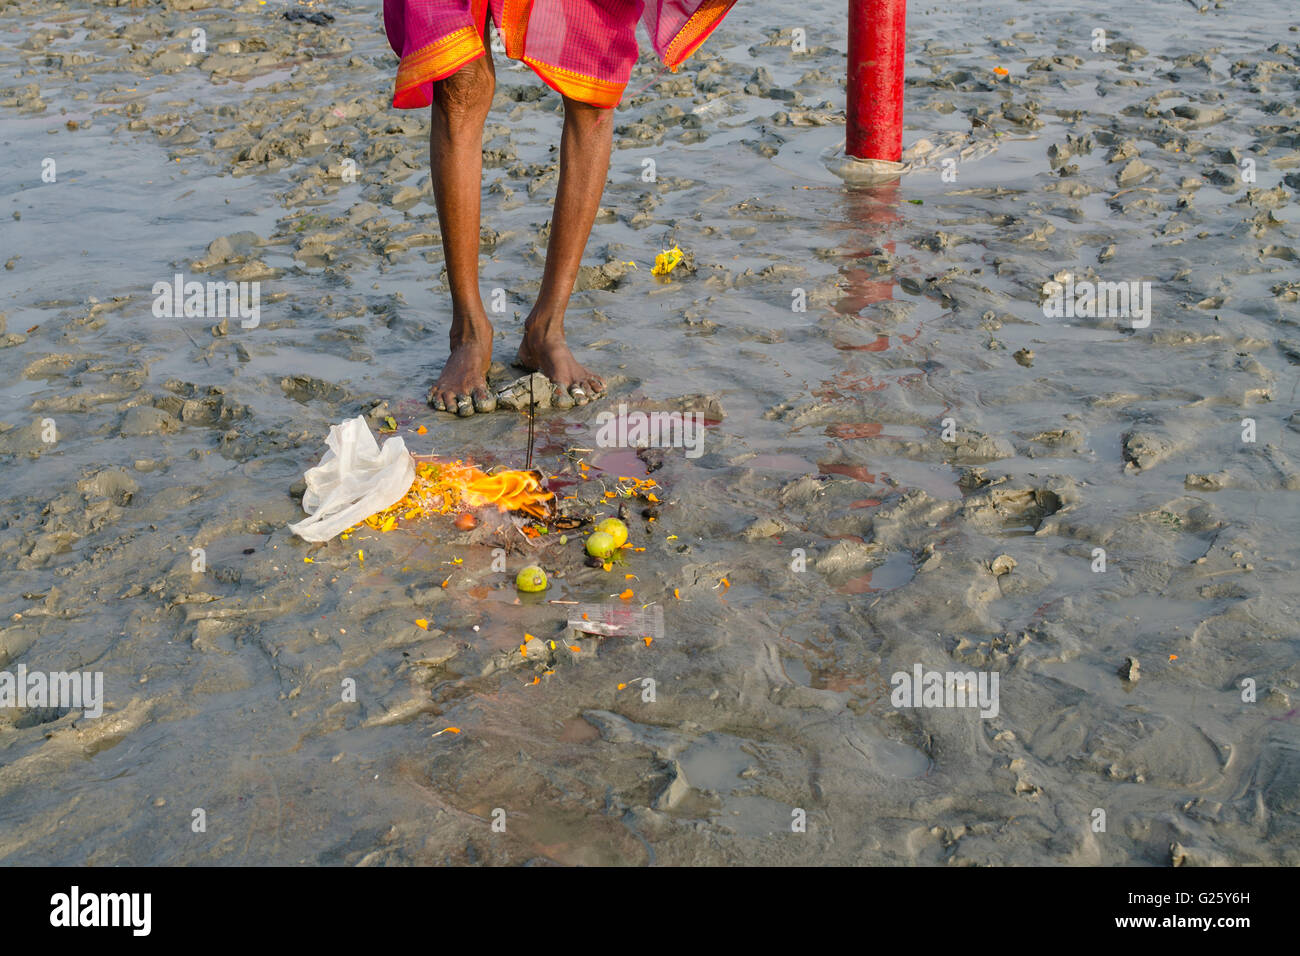 Woman Performing Rituals - Stock Image